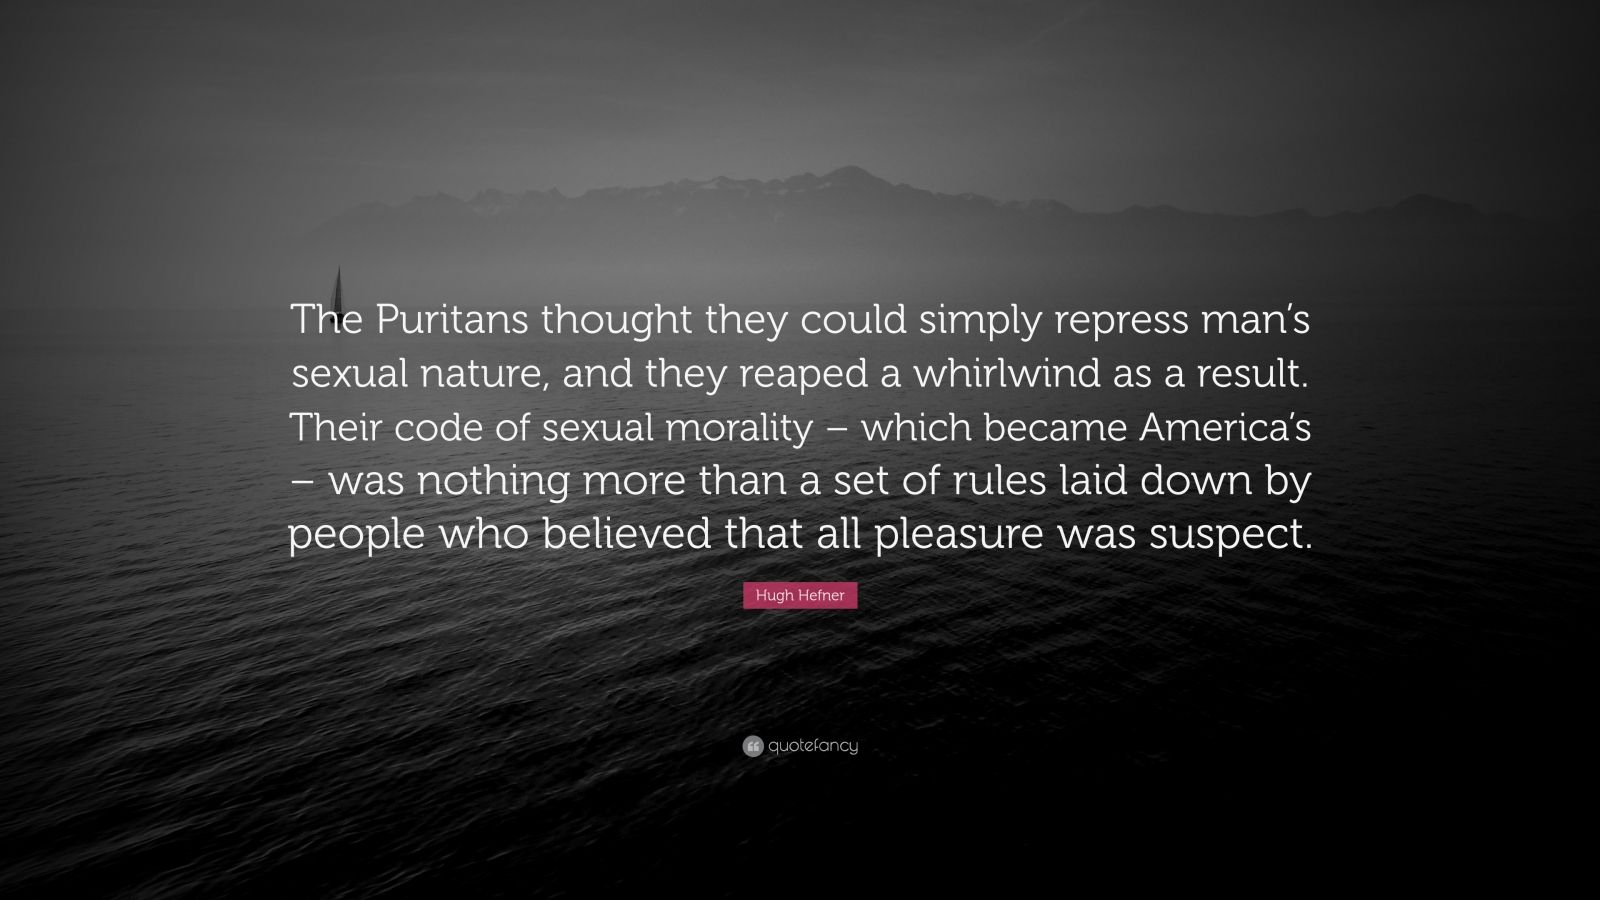 "Hugh Hefner Quote: ""The Puritans thought they could simply repress man's sexual nature, and they reaped a whirlwind as a result. Their code of sexual morality – which became America's – was nothing more than a set of rules laid down by people who believed that all pleasure was suspect."""